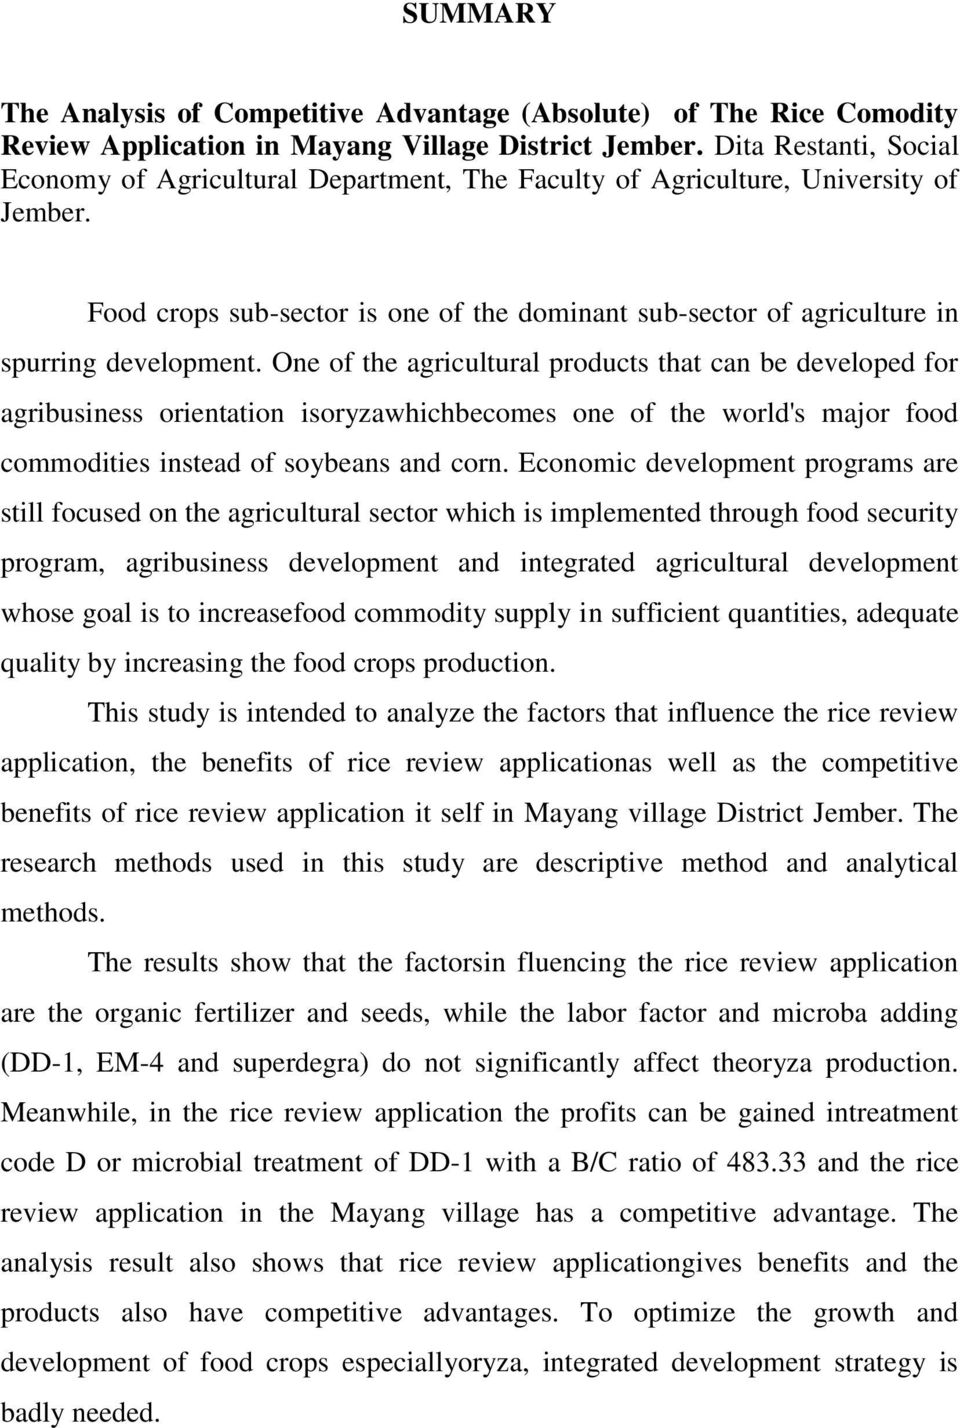 Food crops sub-sector is one of the dominant sub-sector of agriculture in spurring development.